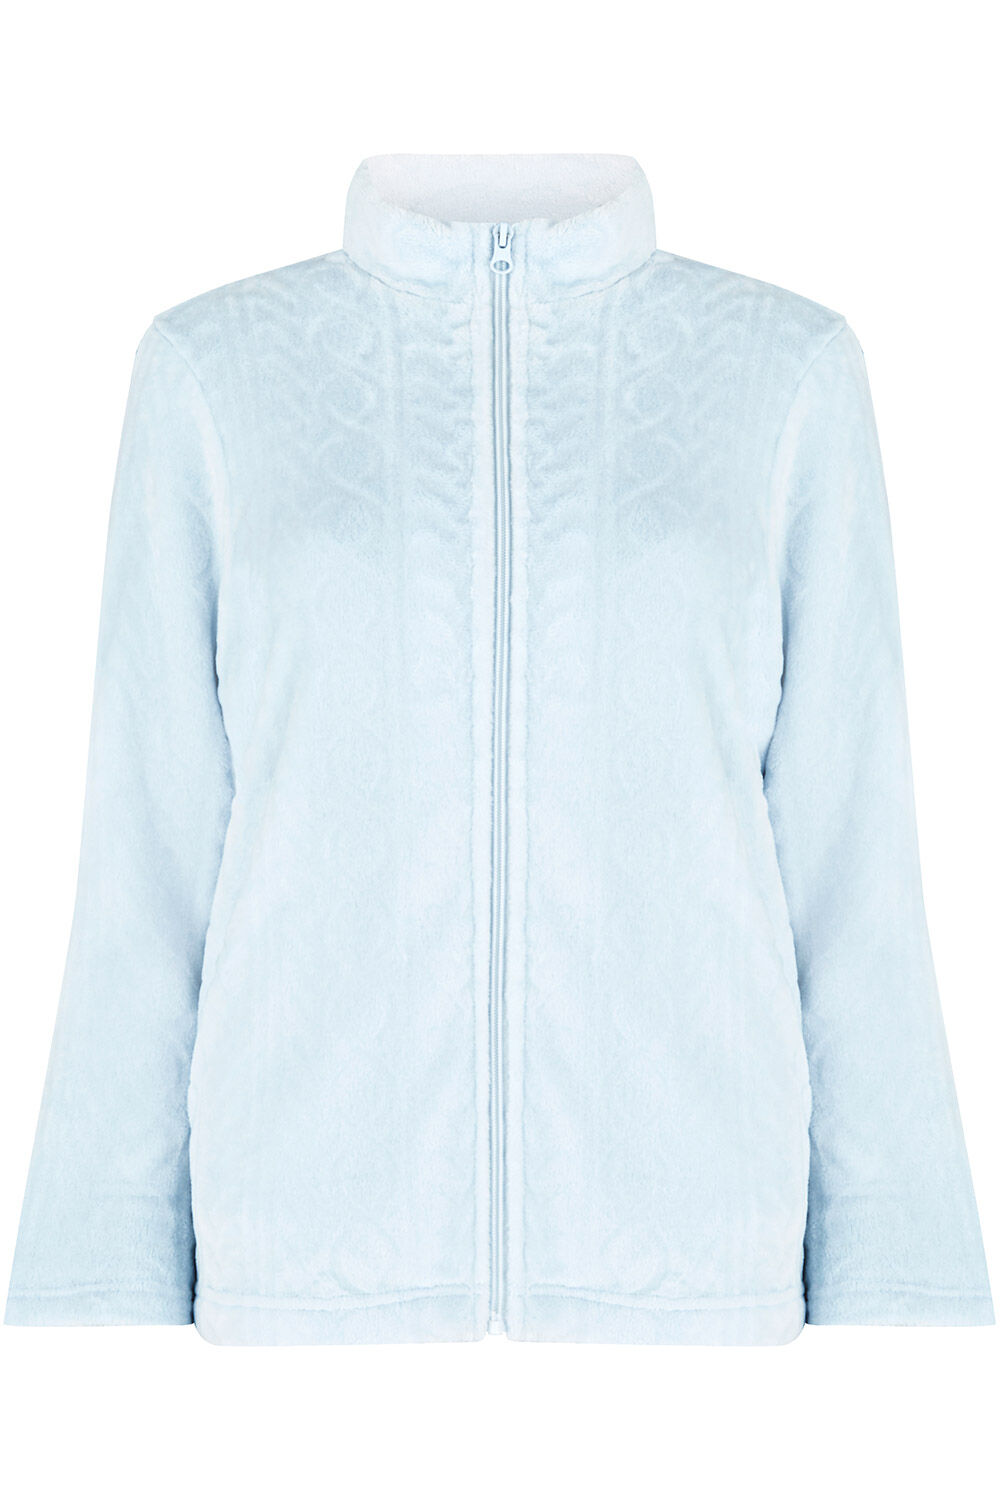 cardigans 1 blue 16 inch open ended zip for jackets